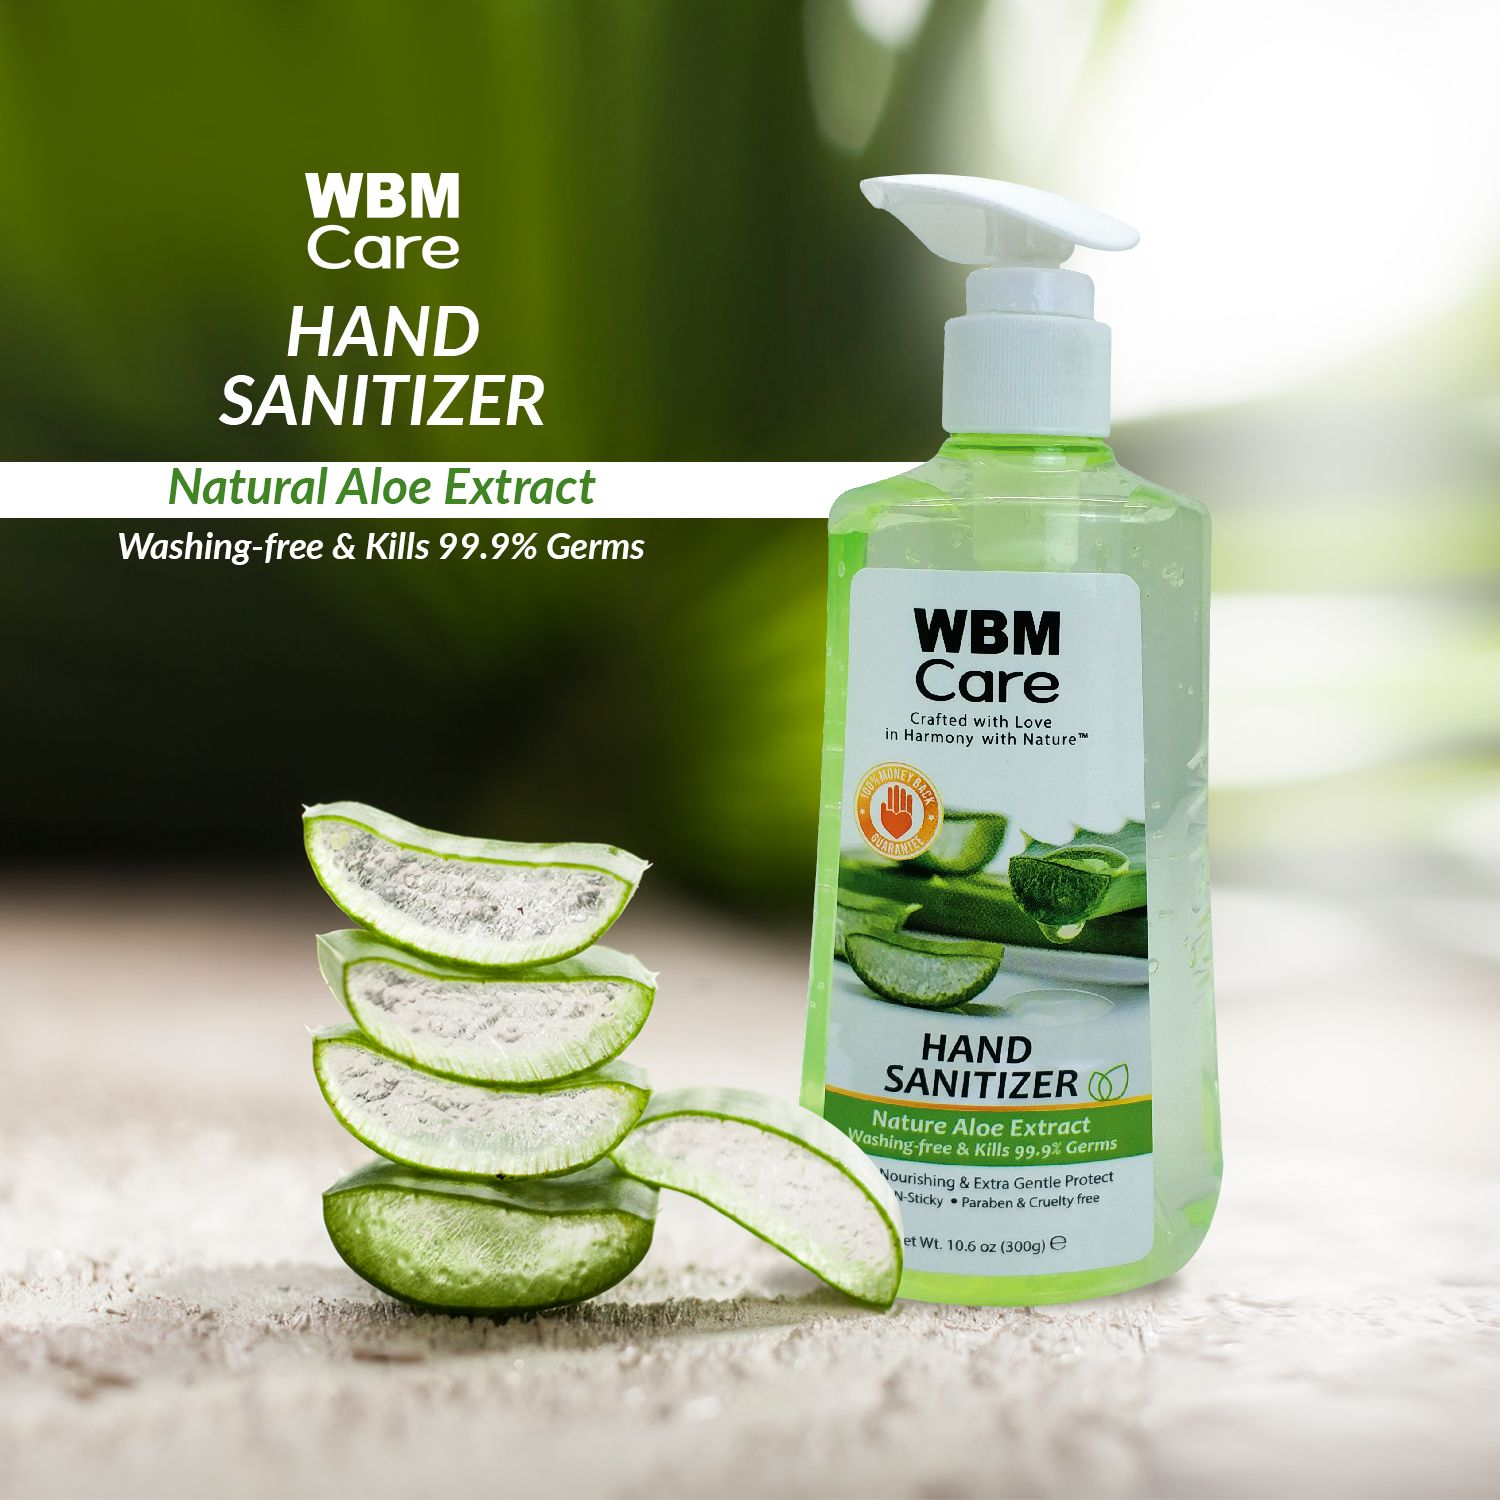 Wbm Care Offers The Best Hand Sanitizer With Aloe Vera Extracts